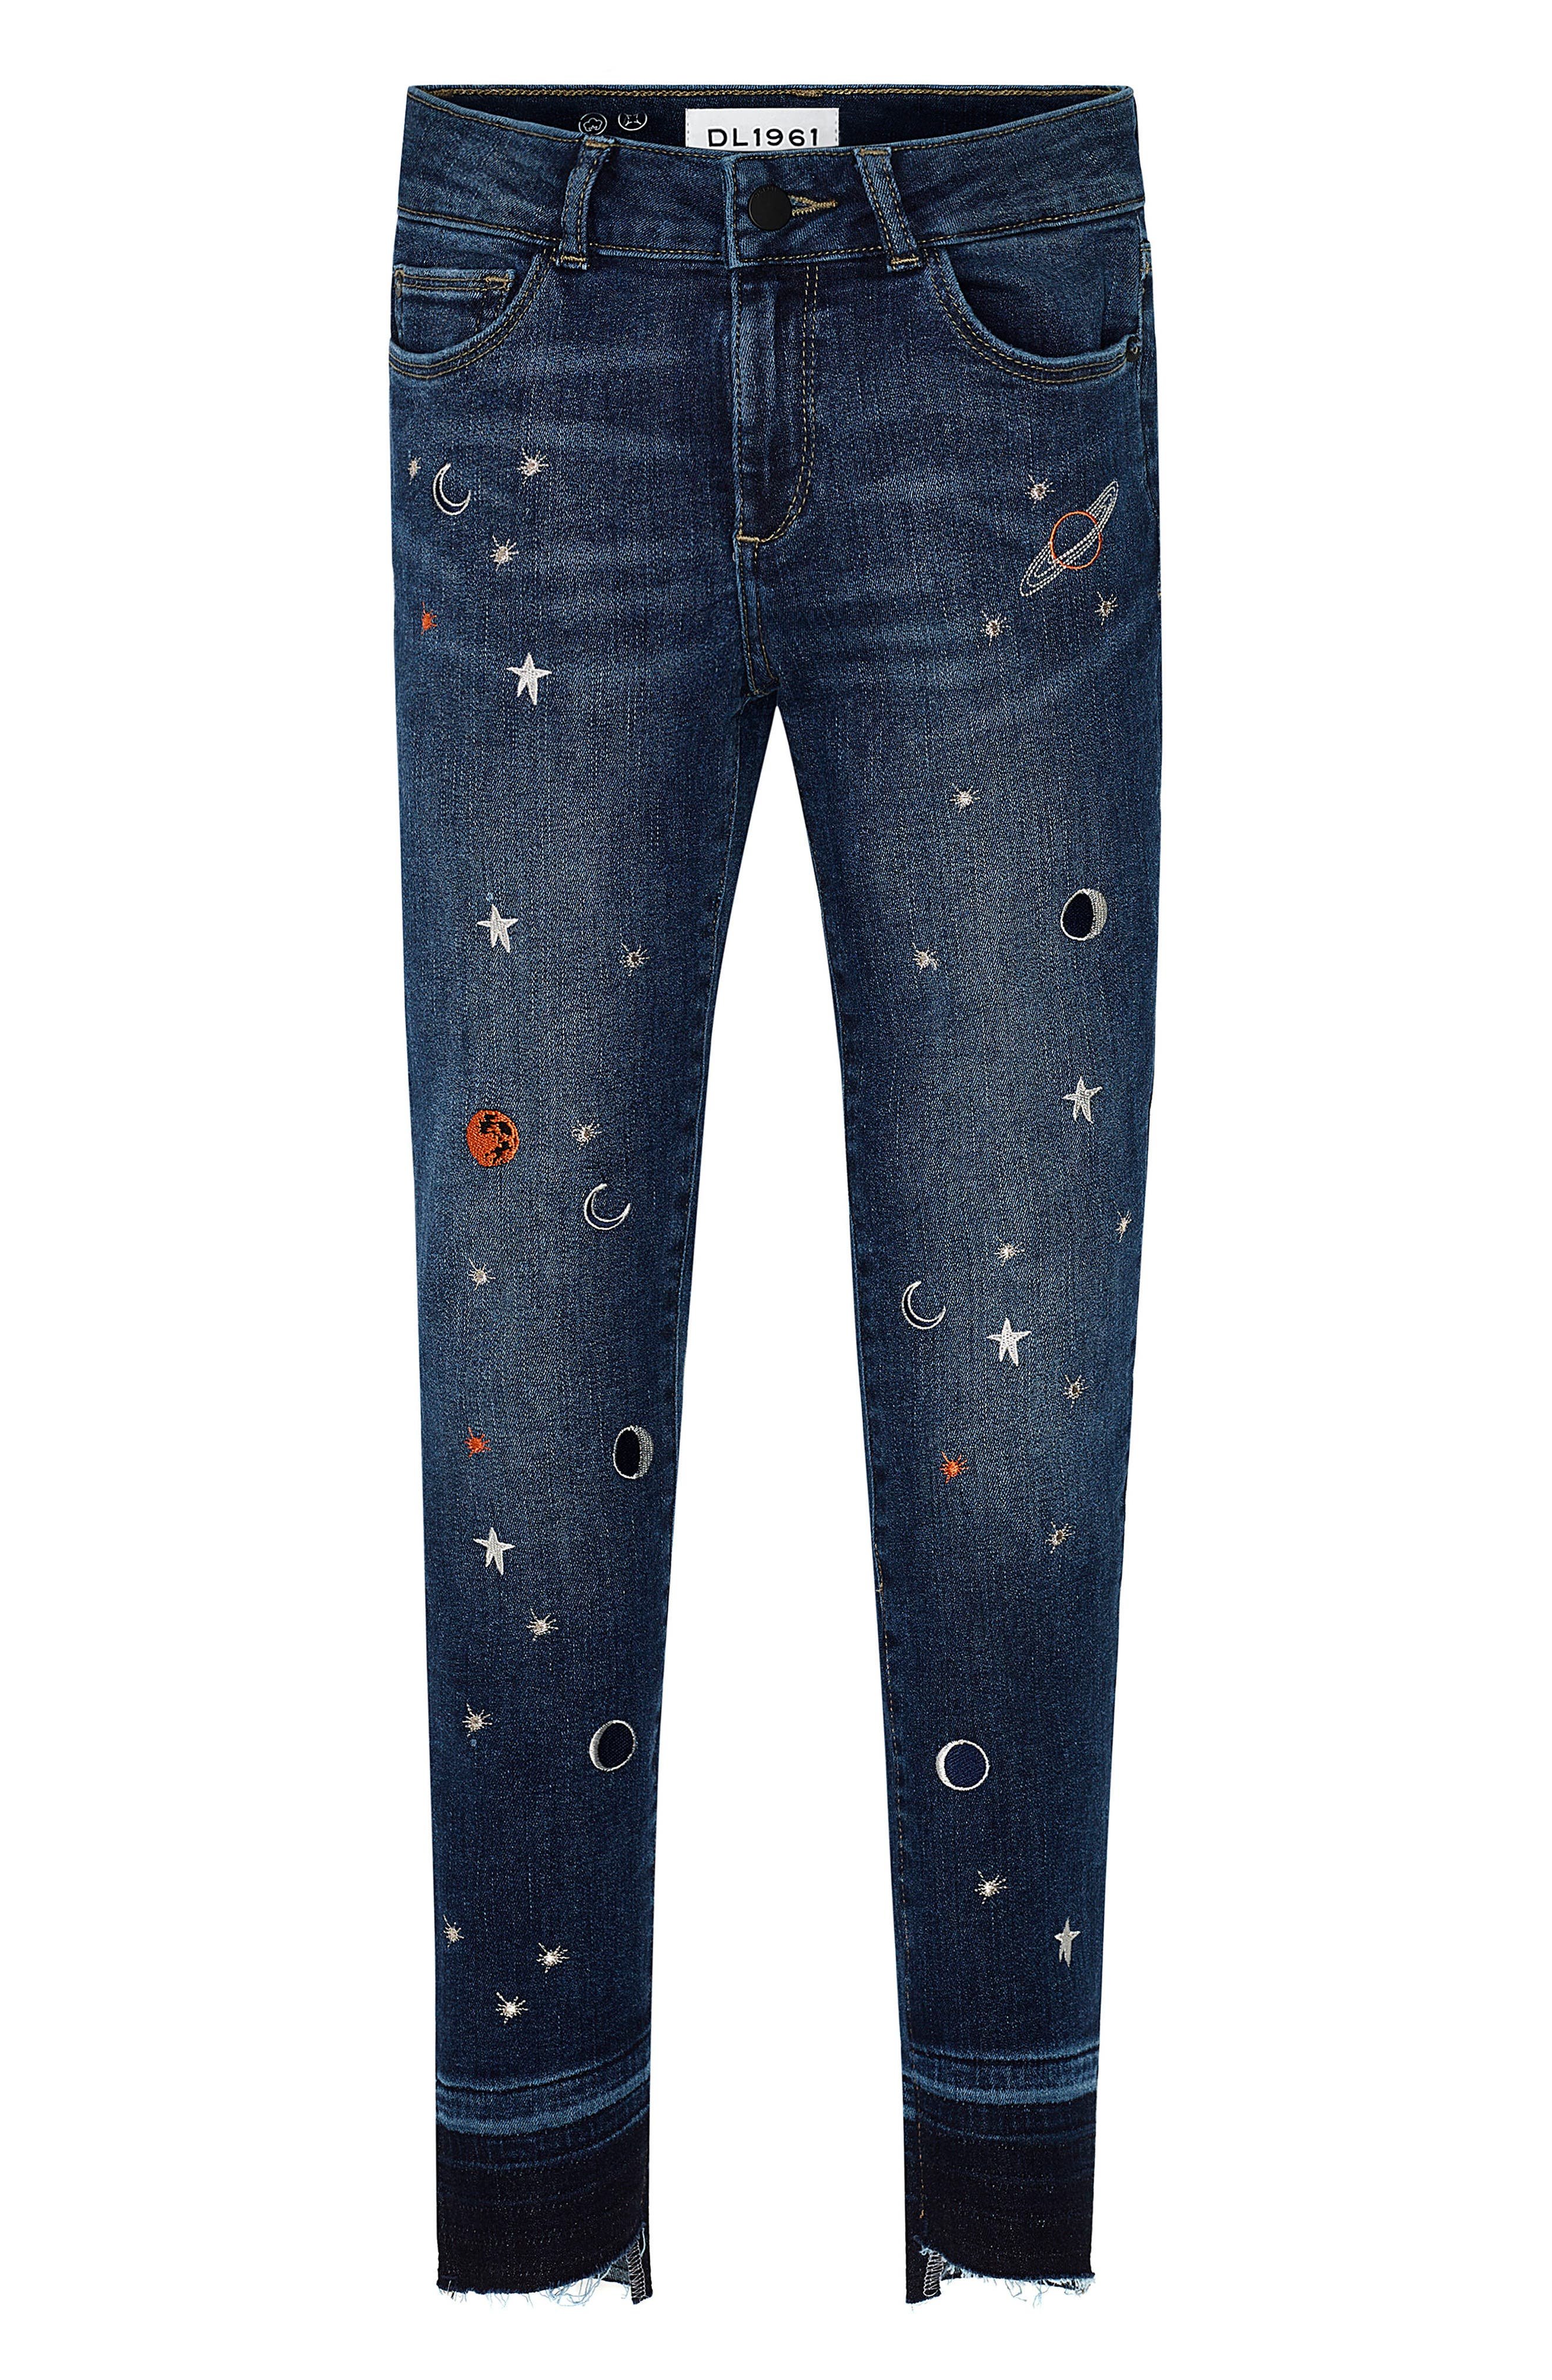 Alternate Image 1 Selected - DL1961 Chloe Galaxy Embroidered Skinny Jeans (Toddler Girls & Little Girls)